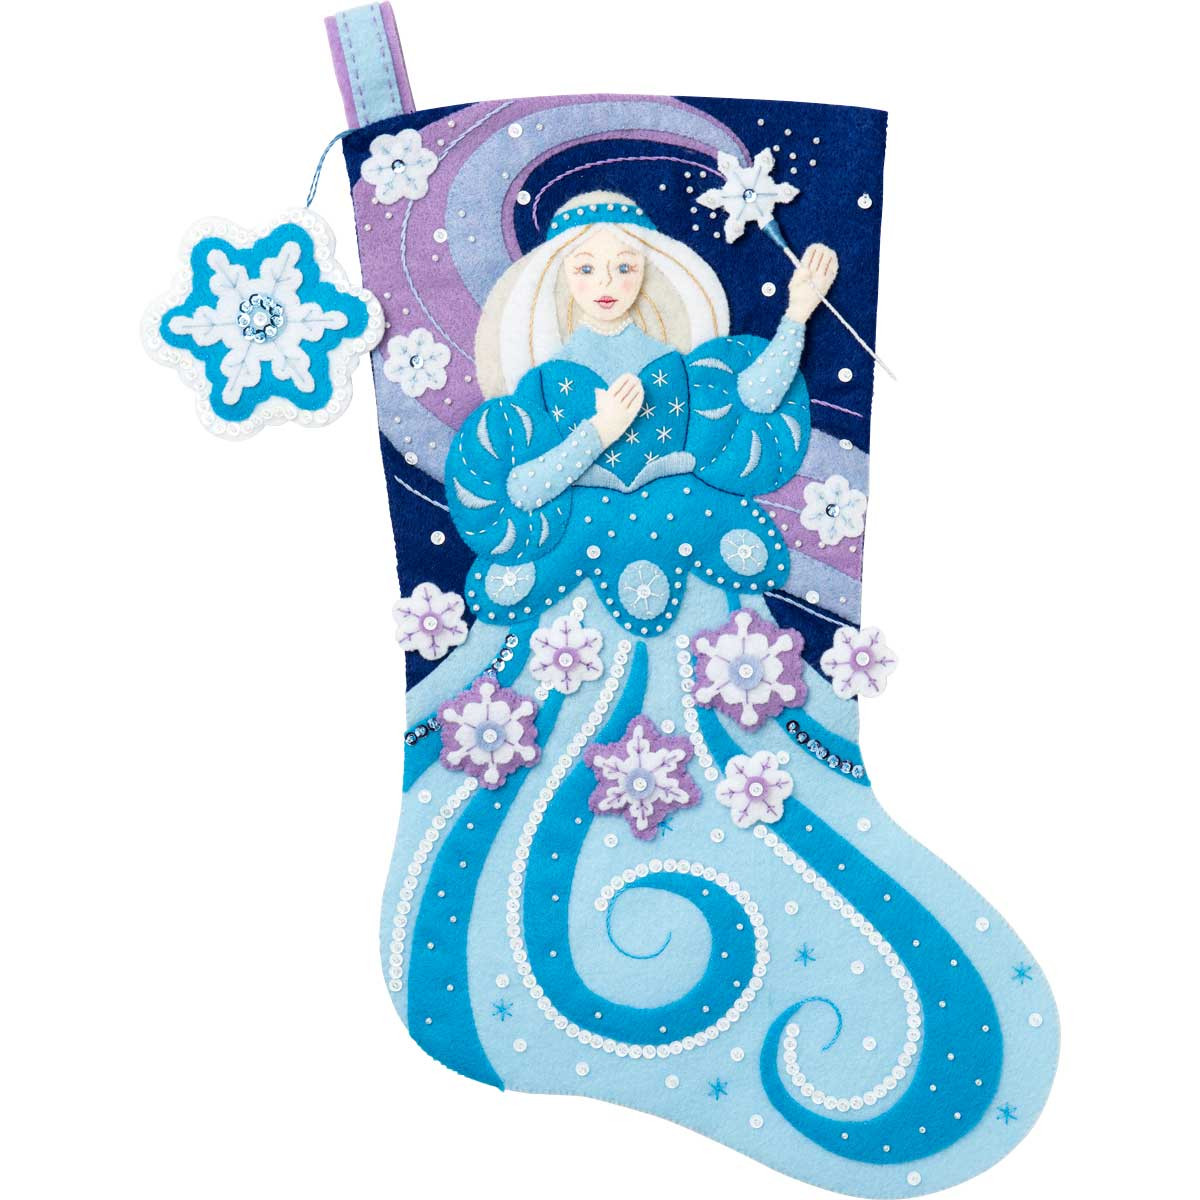 Bucilla ® Seasonal - Felt - Stocking Kits - Snow Princess - 86937E